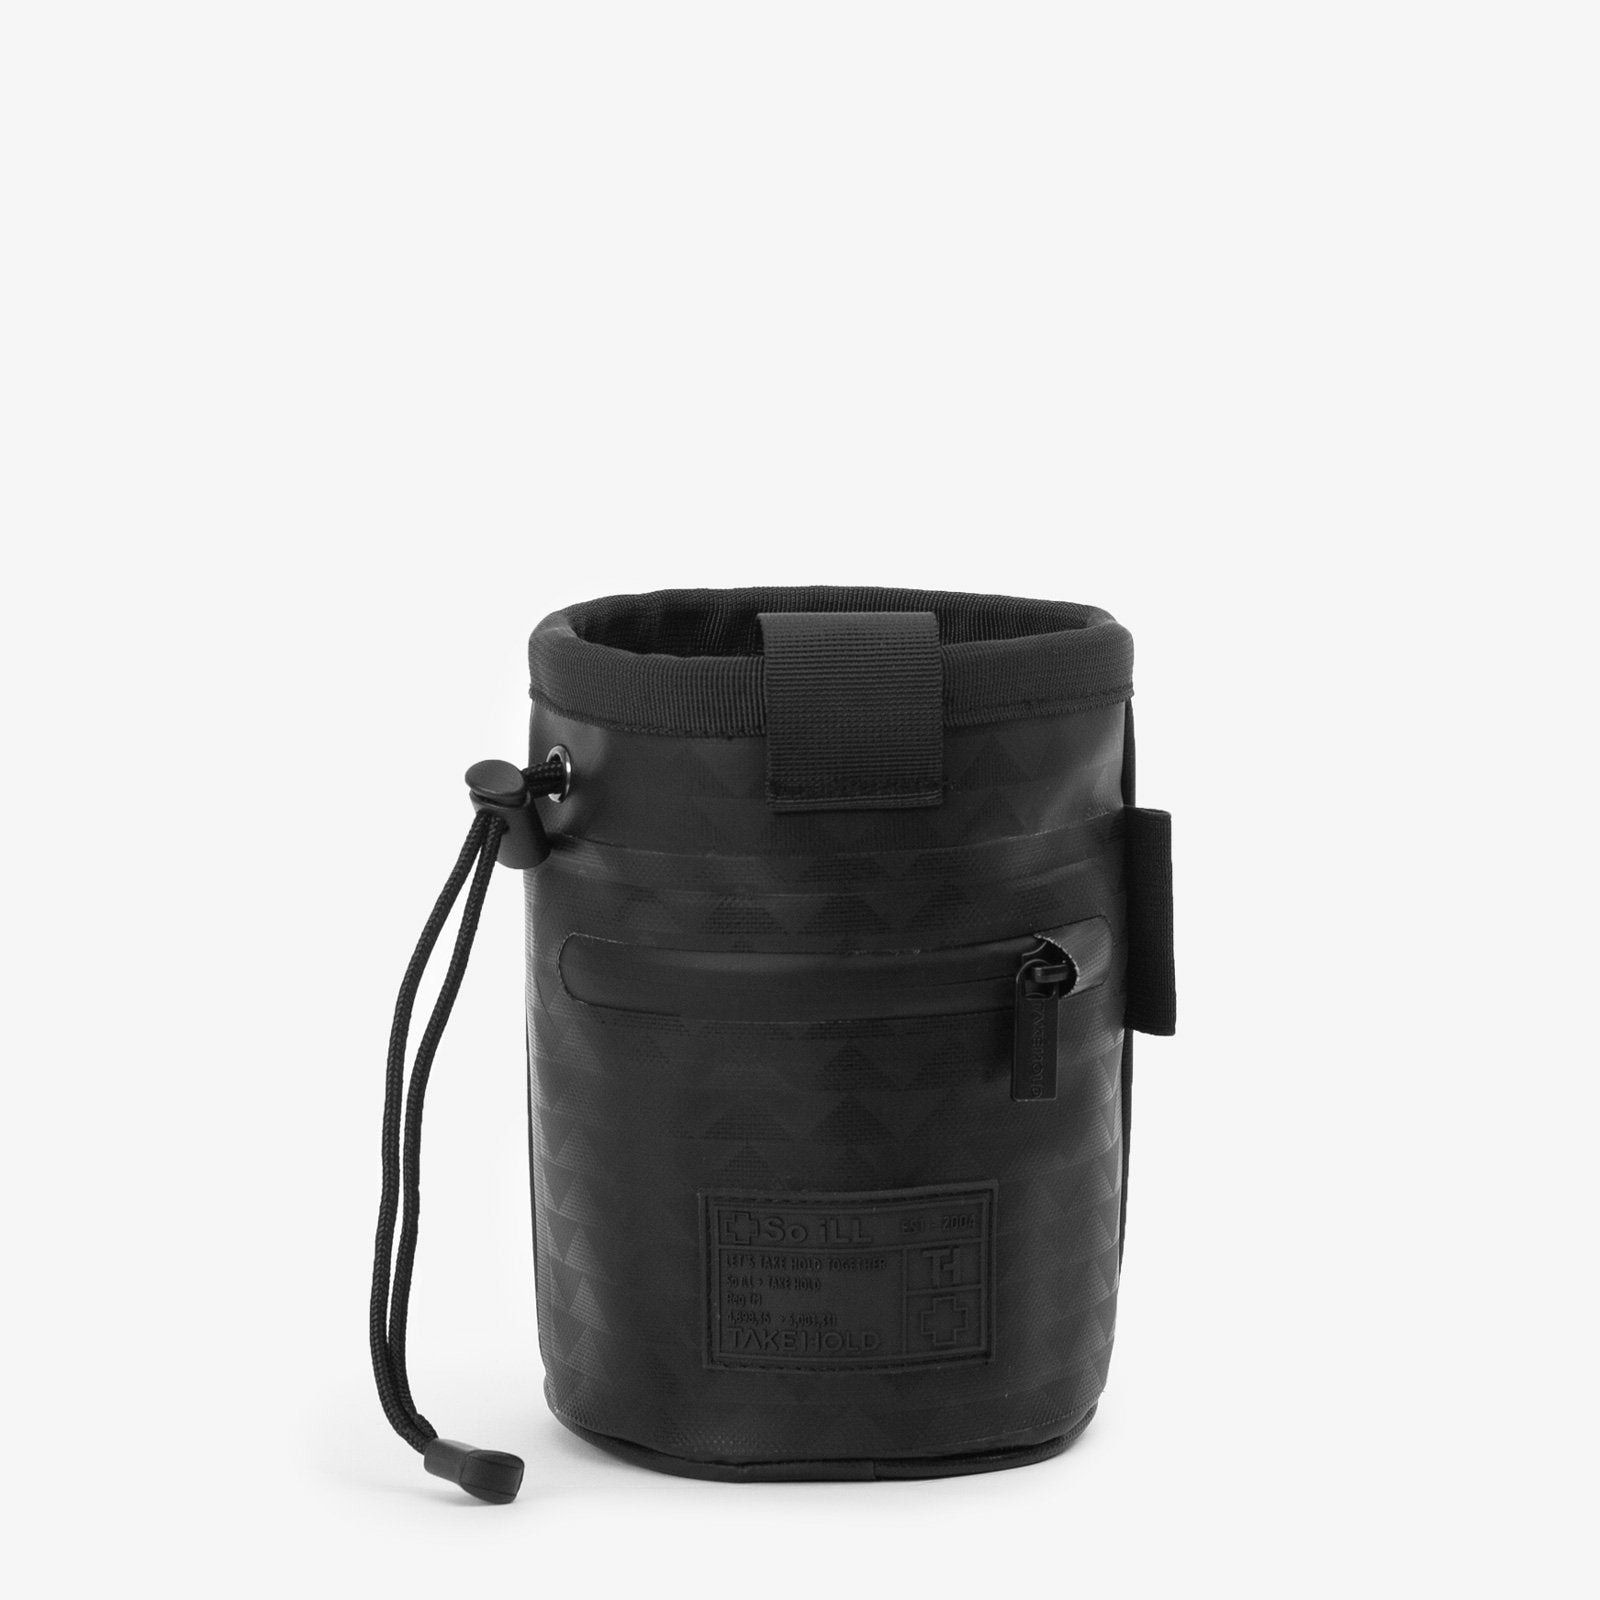 So iLL On the Roam Jason Mamoa Chalk Bag in Black